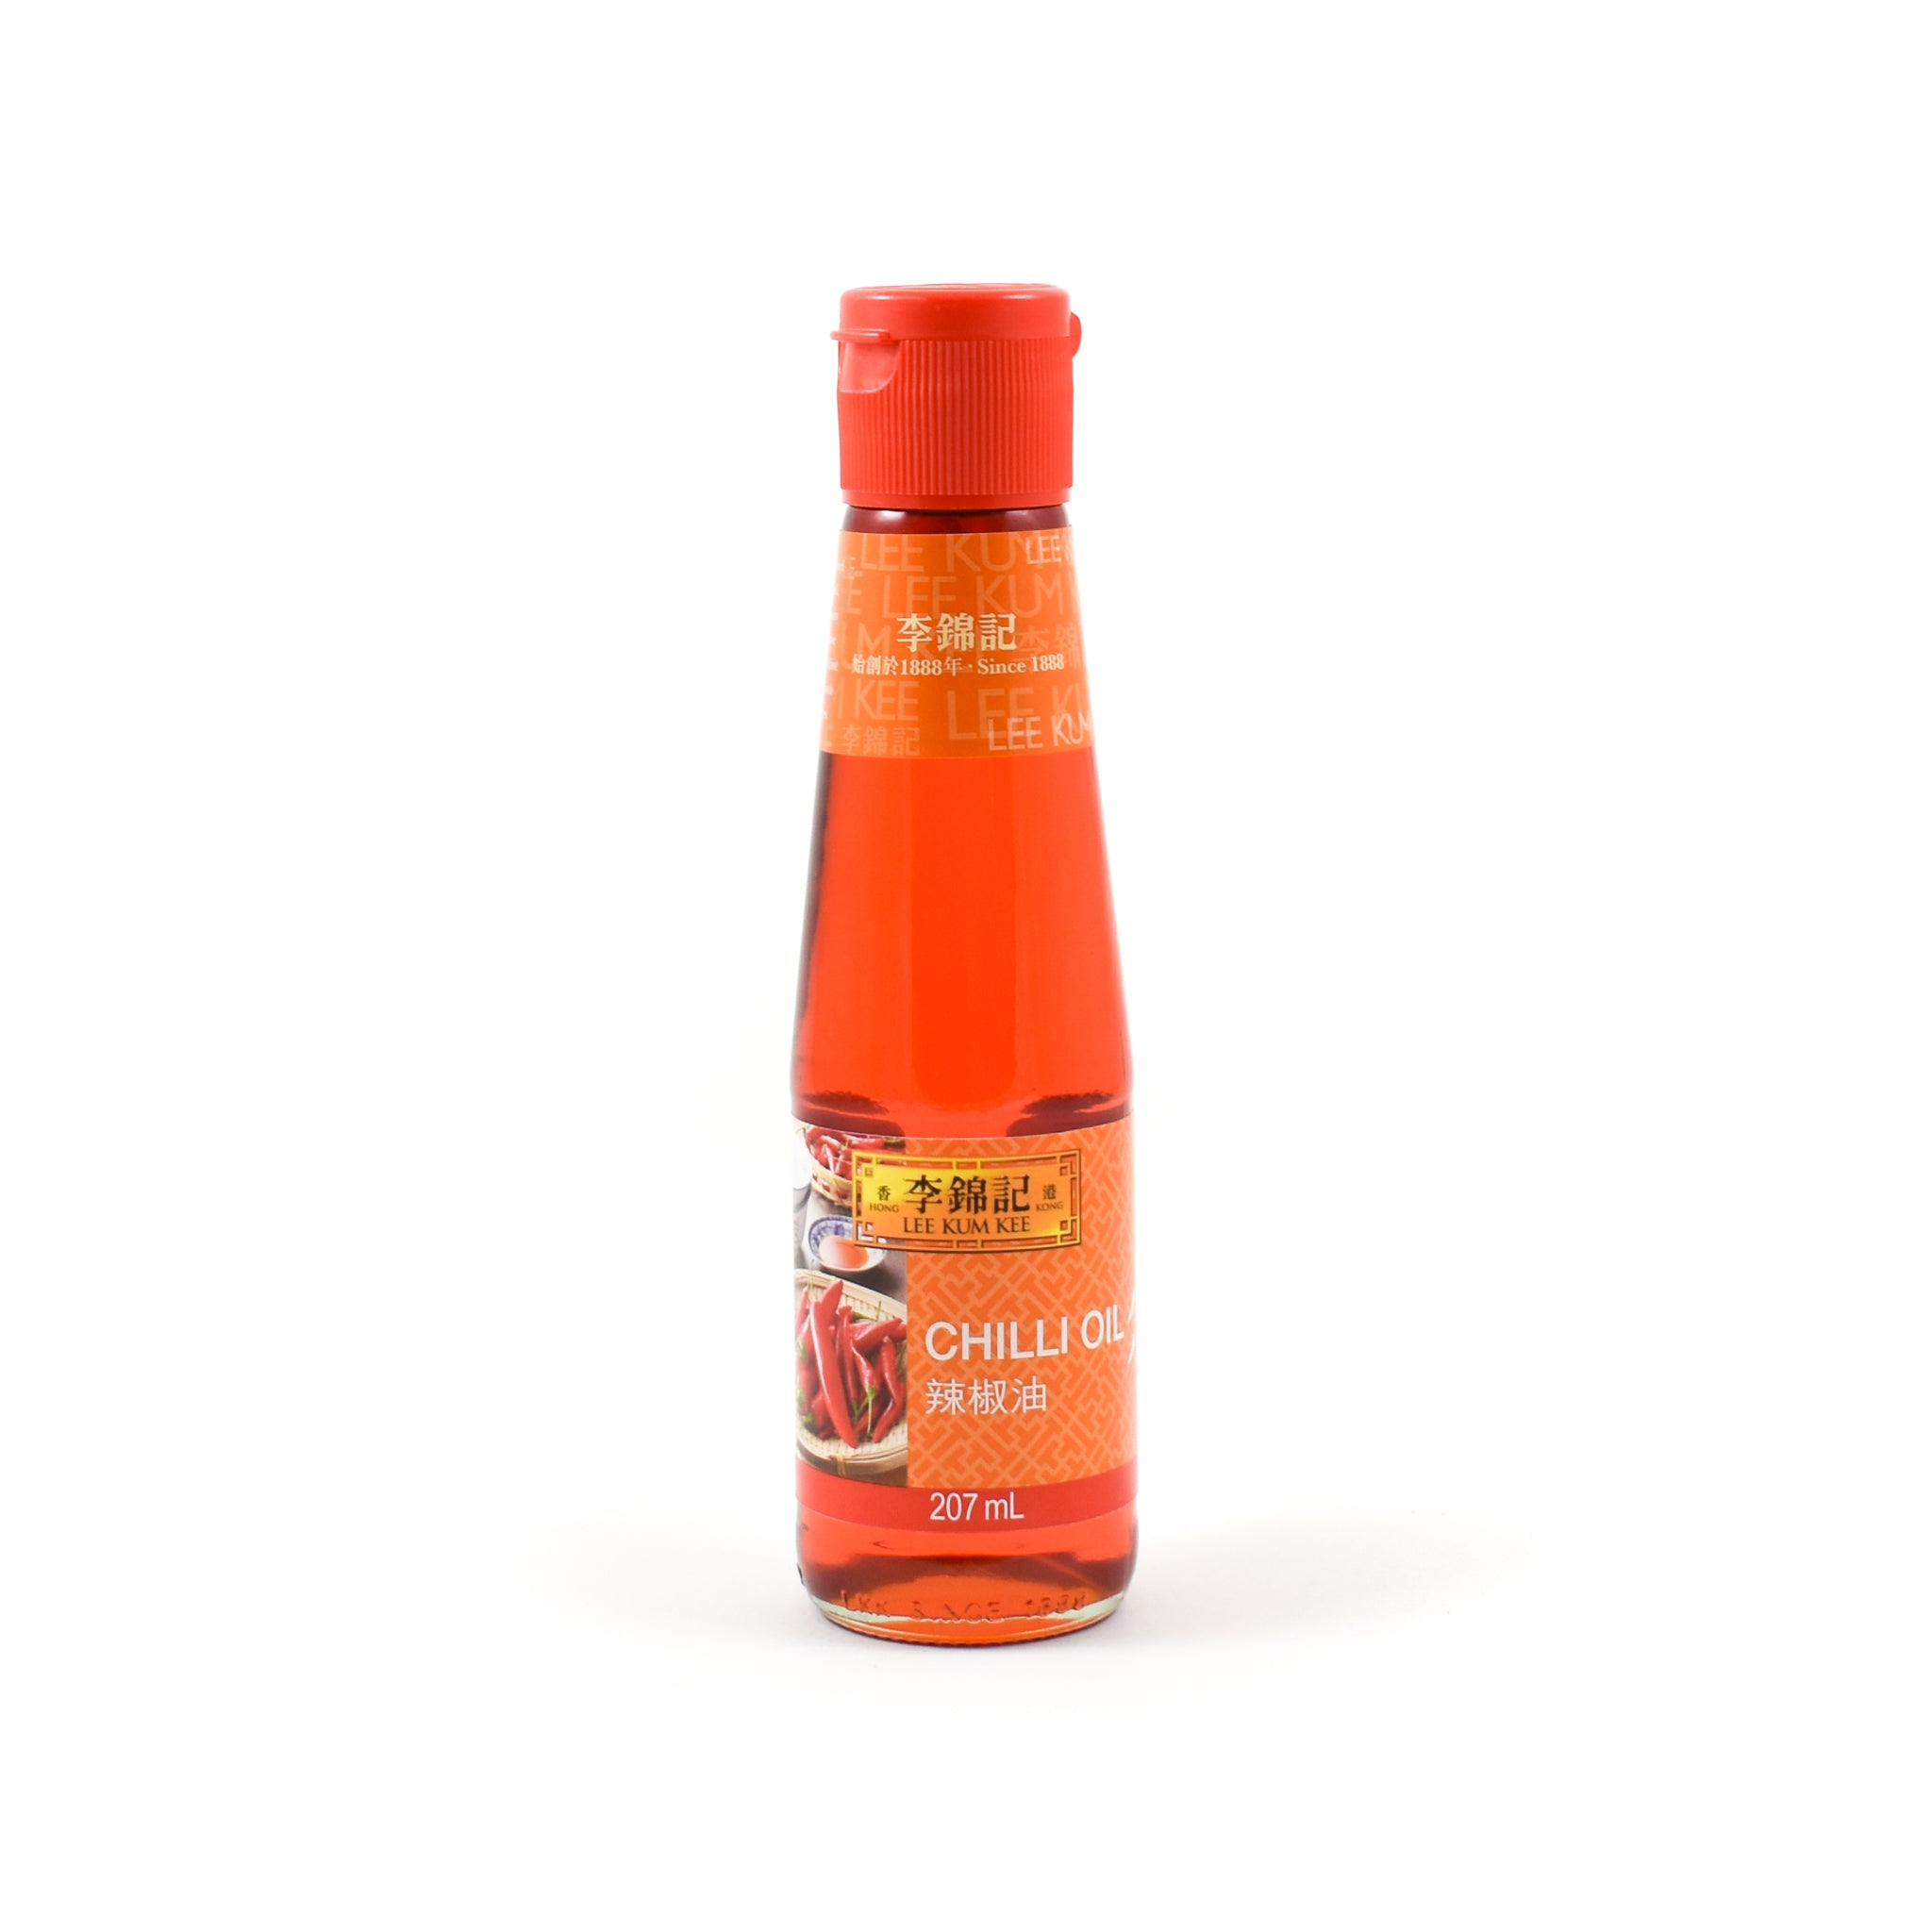 Lee Kum Kee Chilli Oil 207ml Ingredients Oils & Vinegars Chinese Food